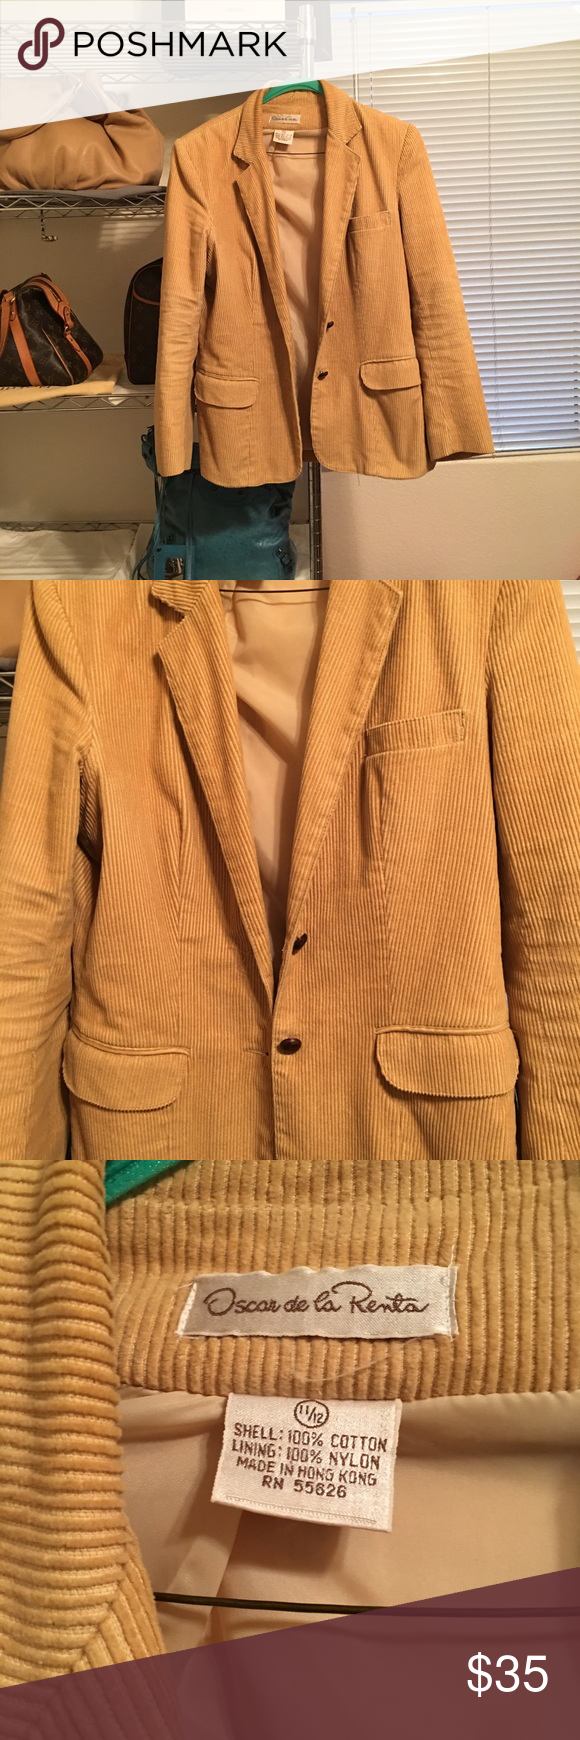 Rare find Vintage Oscar de la Renta Blazer Wow. This blazer is amazing. Fully lined corduroy. I bought from a consignment store last year and wore twice with a dress I had. Since getting rid of the dress I haven't worn it. Really great condition. Needs to be cleaned tiny spot on the back which looks like it will come out with cleaning. Couldn't even capture it in pic it's so small. Selling for a steal. Size 11/12 runs small and could fit a 10 as well. Color is tan. Oscar de la Renta Jackets…